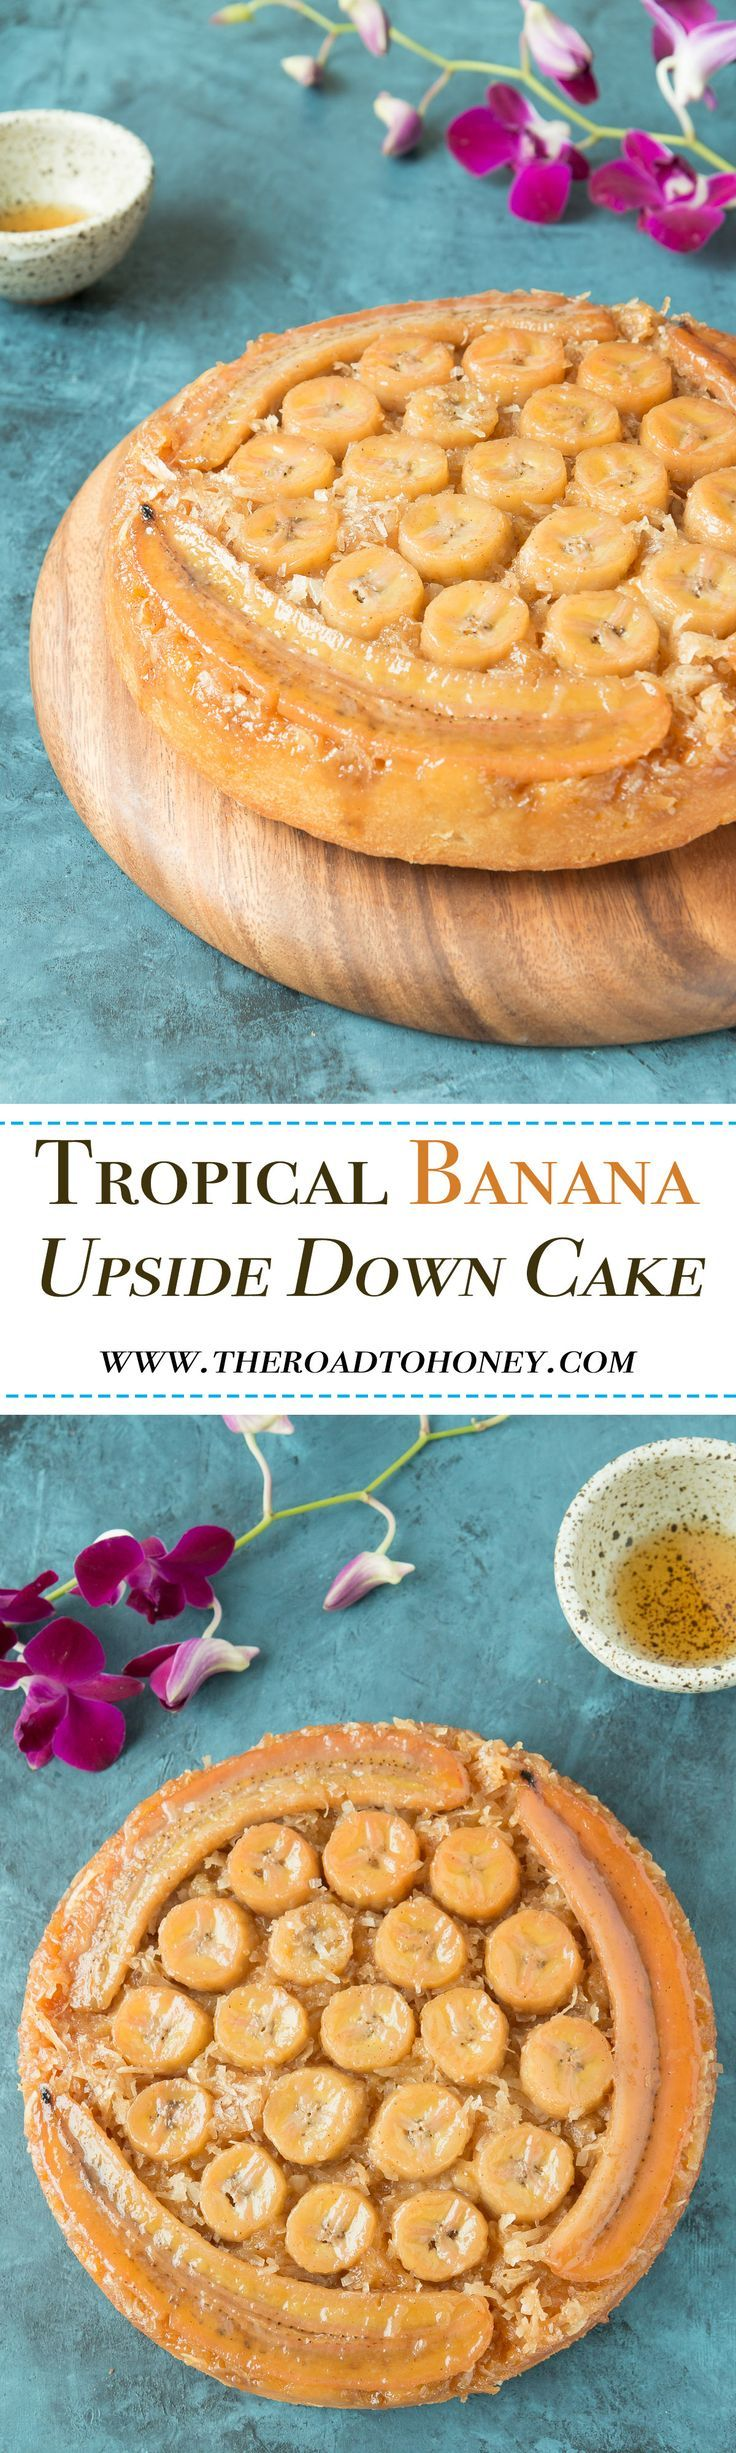 Tropical Banana Upside Down Cake!!! Oh my goodness.... how absolutely incredibly delicious!!!!!